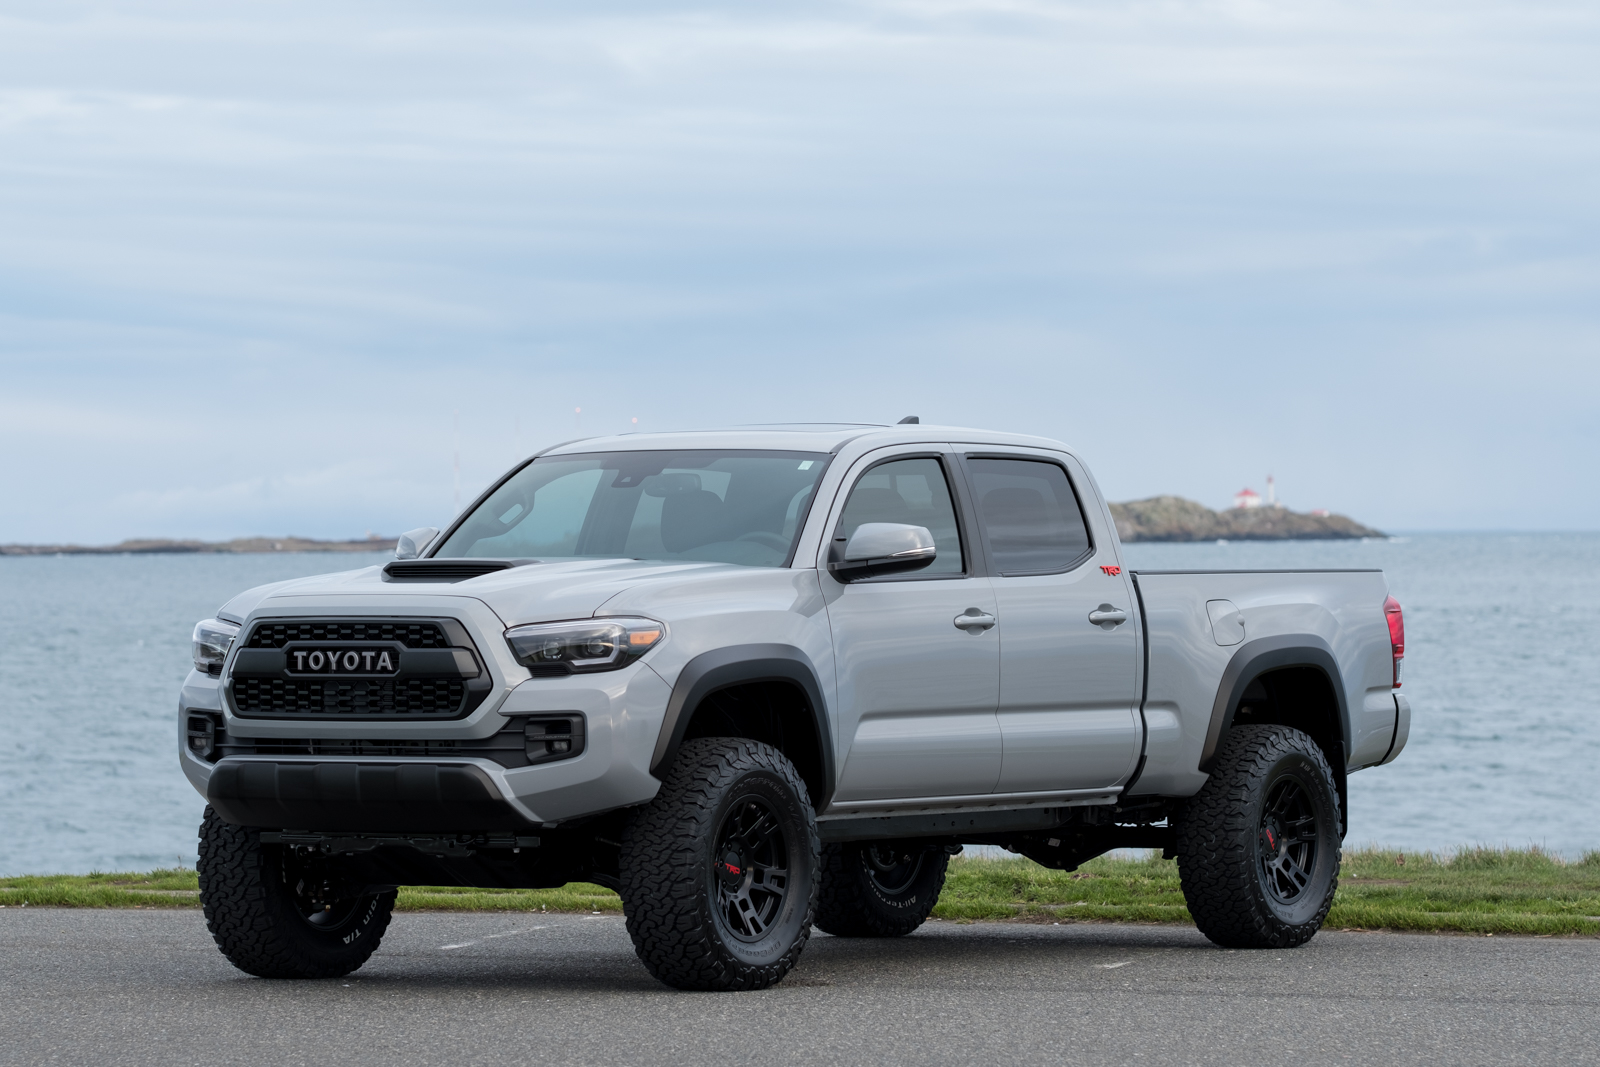 Toyota Tacoma Truck Bed For Sale